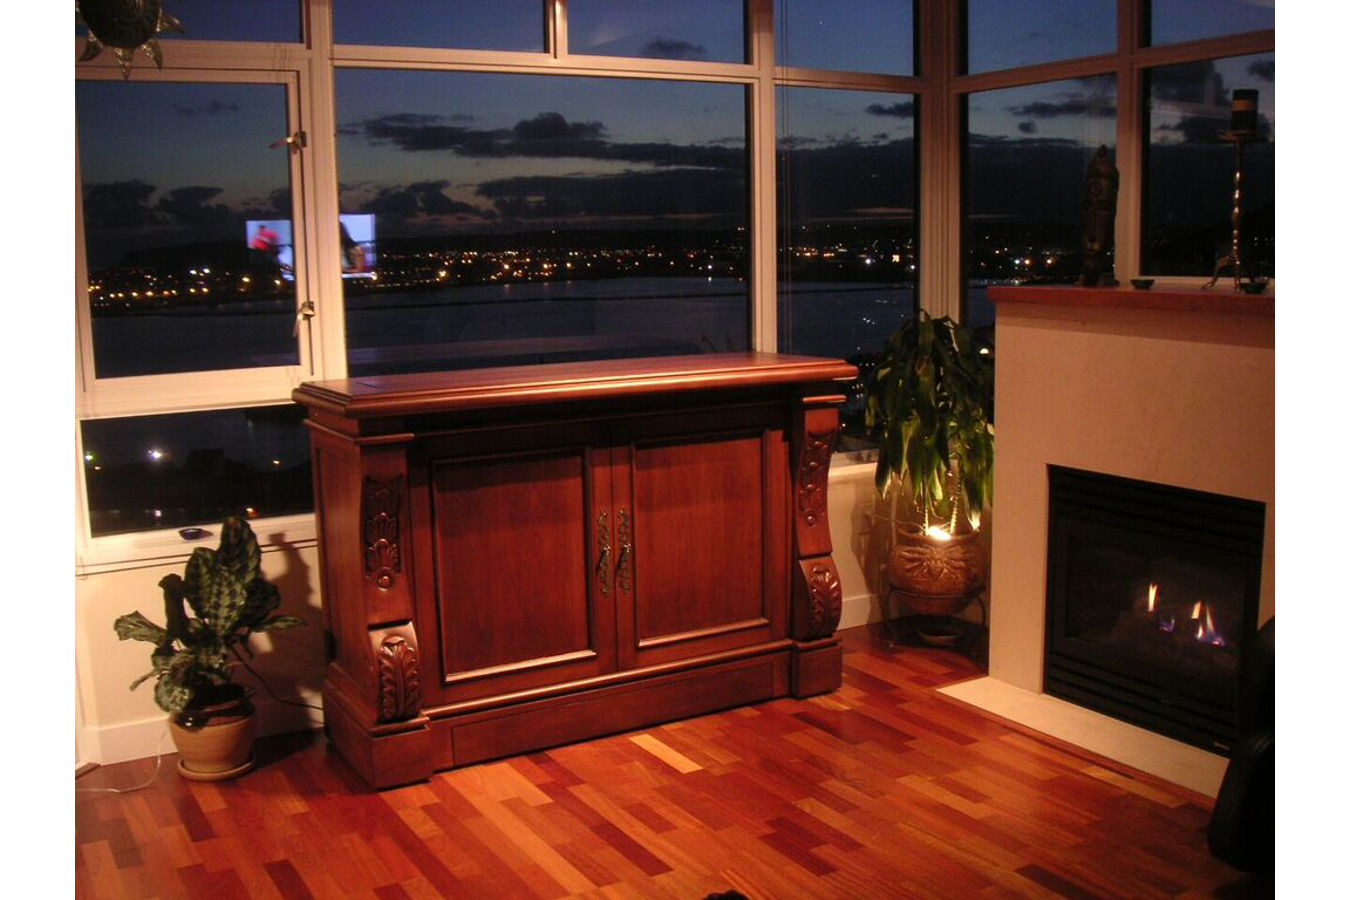 photo of Sabre motrized TV lift cabinet in living